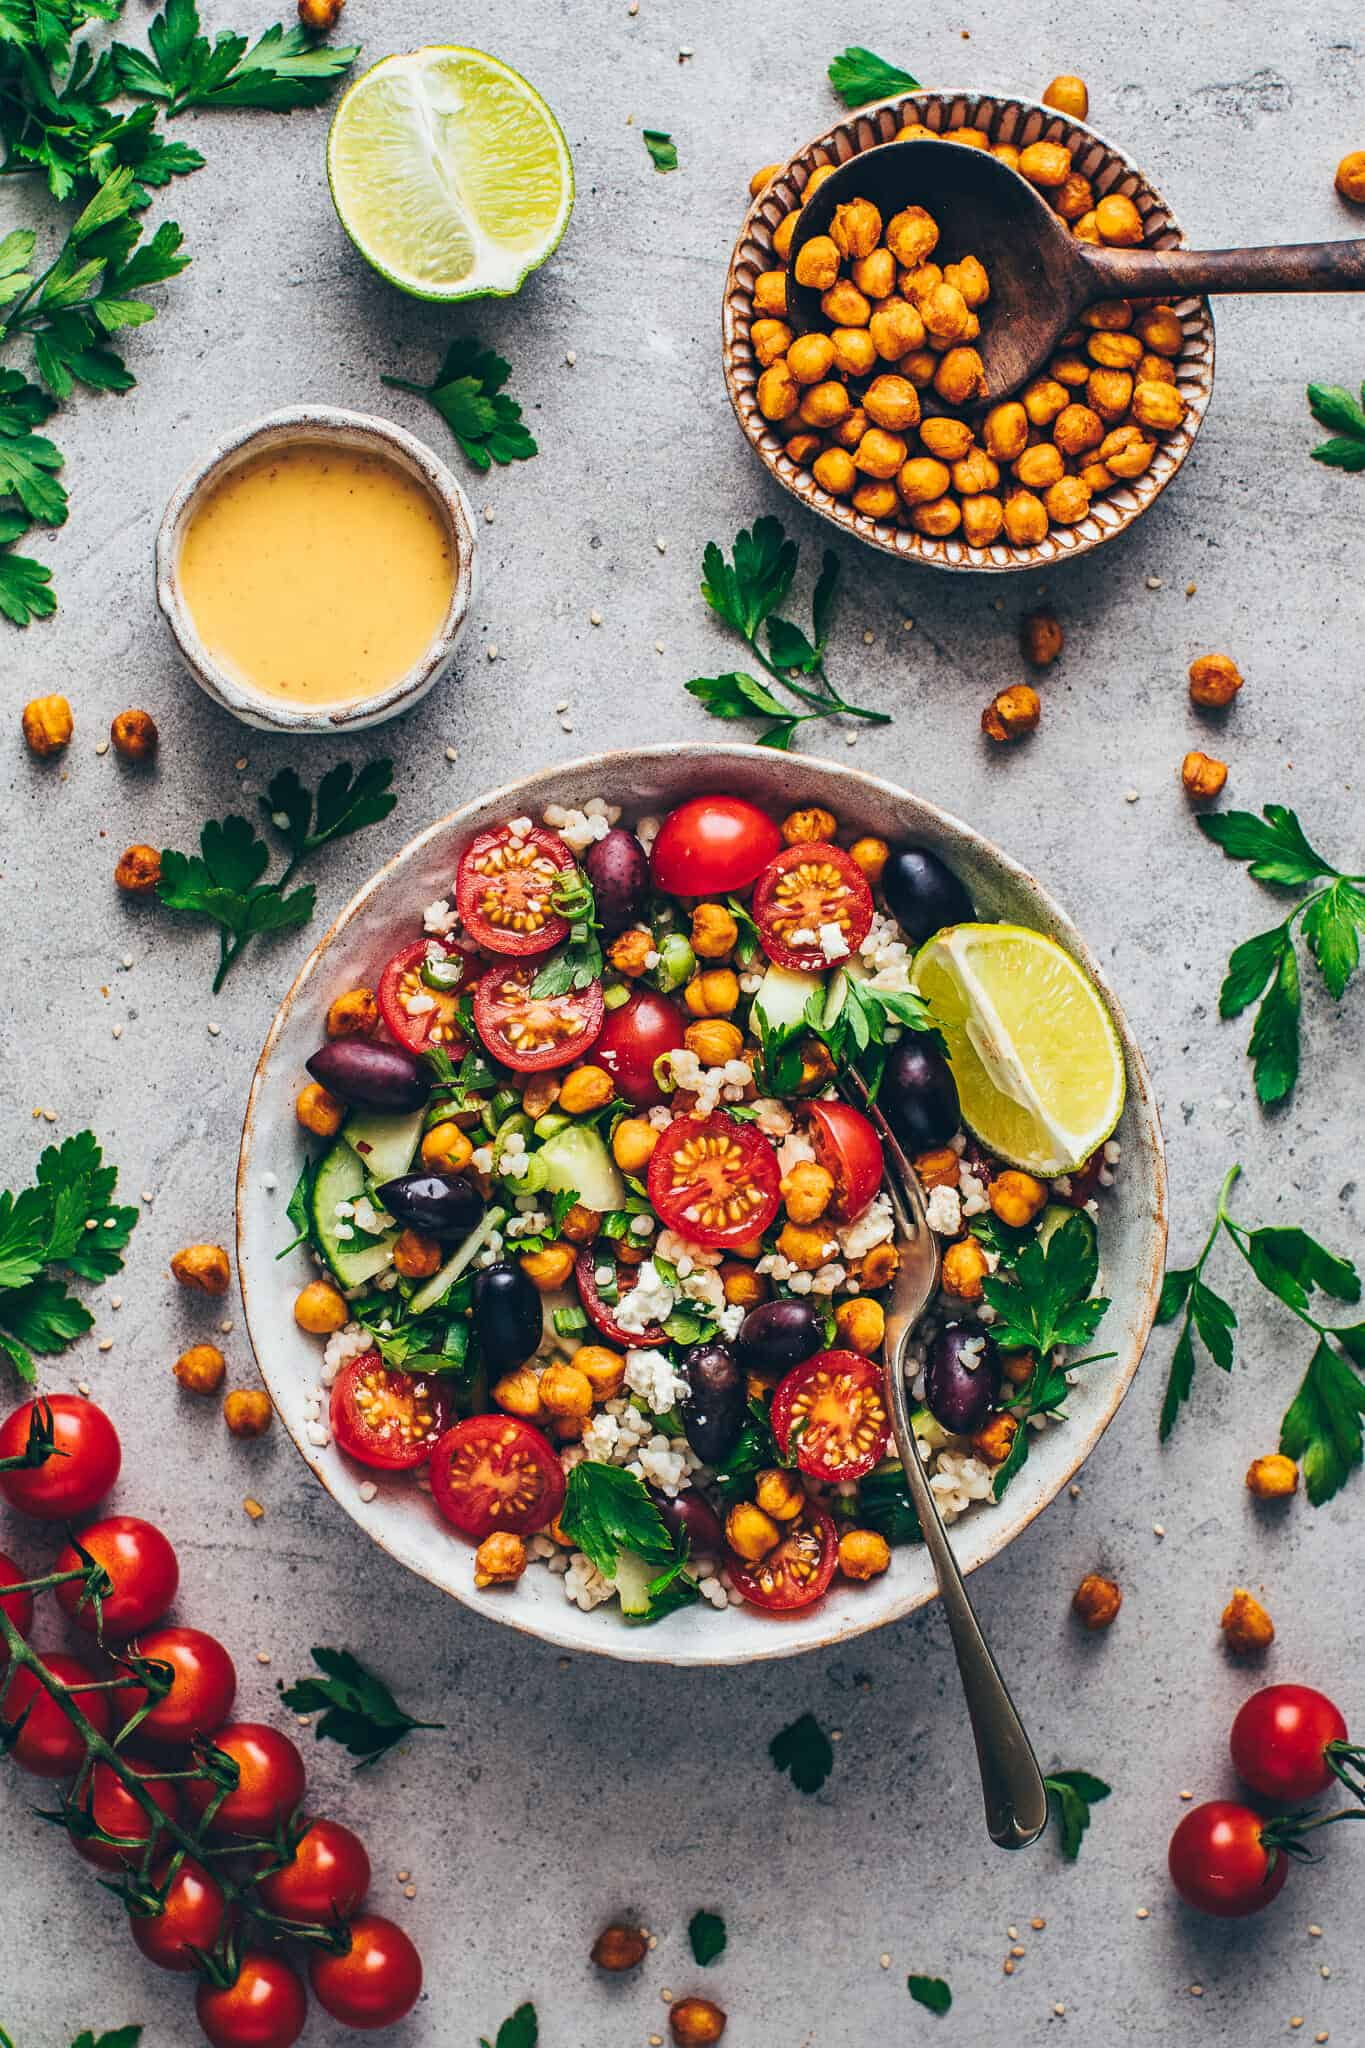 Mediterranean Chickpea Salad with Tahini Dressing, vegetables and crispy roasted chickpeas Recipe.